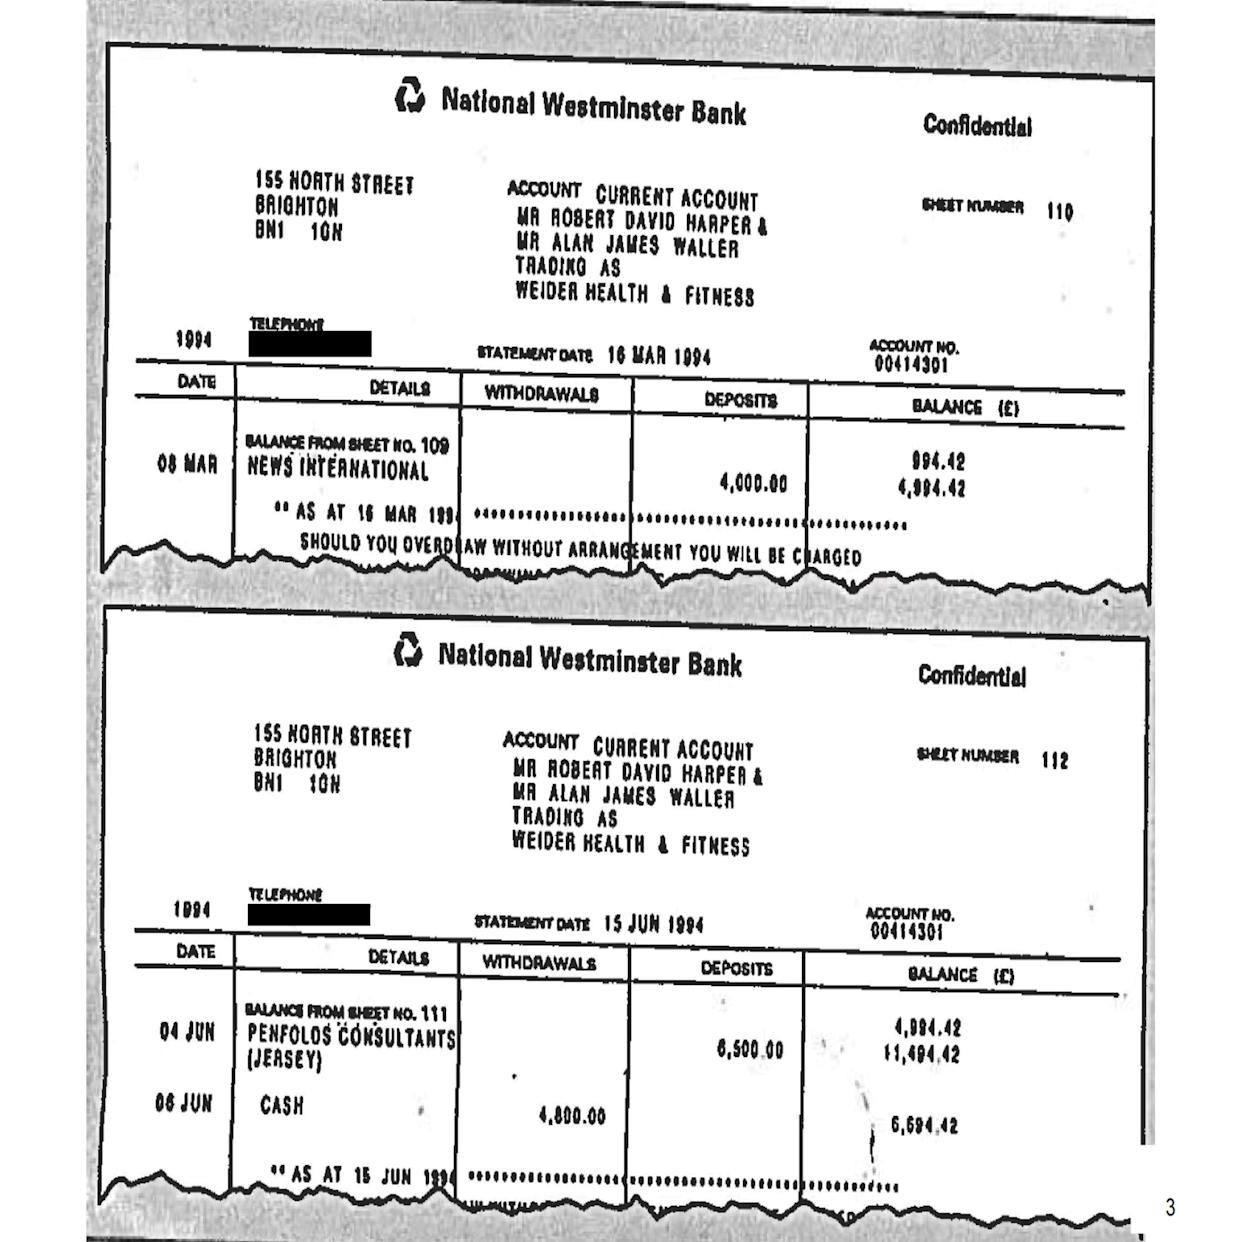 Fake bank statements relating to News International and Penfold Consultants (Jersey), as published in an annex to Lord Dyson's independent investigation into the circumstances around the program. (Photo: BBC/PA)